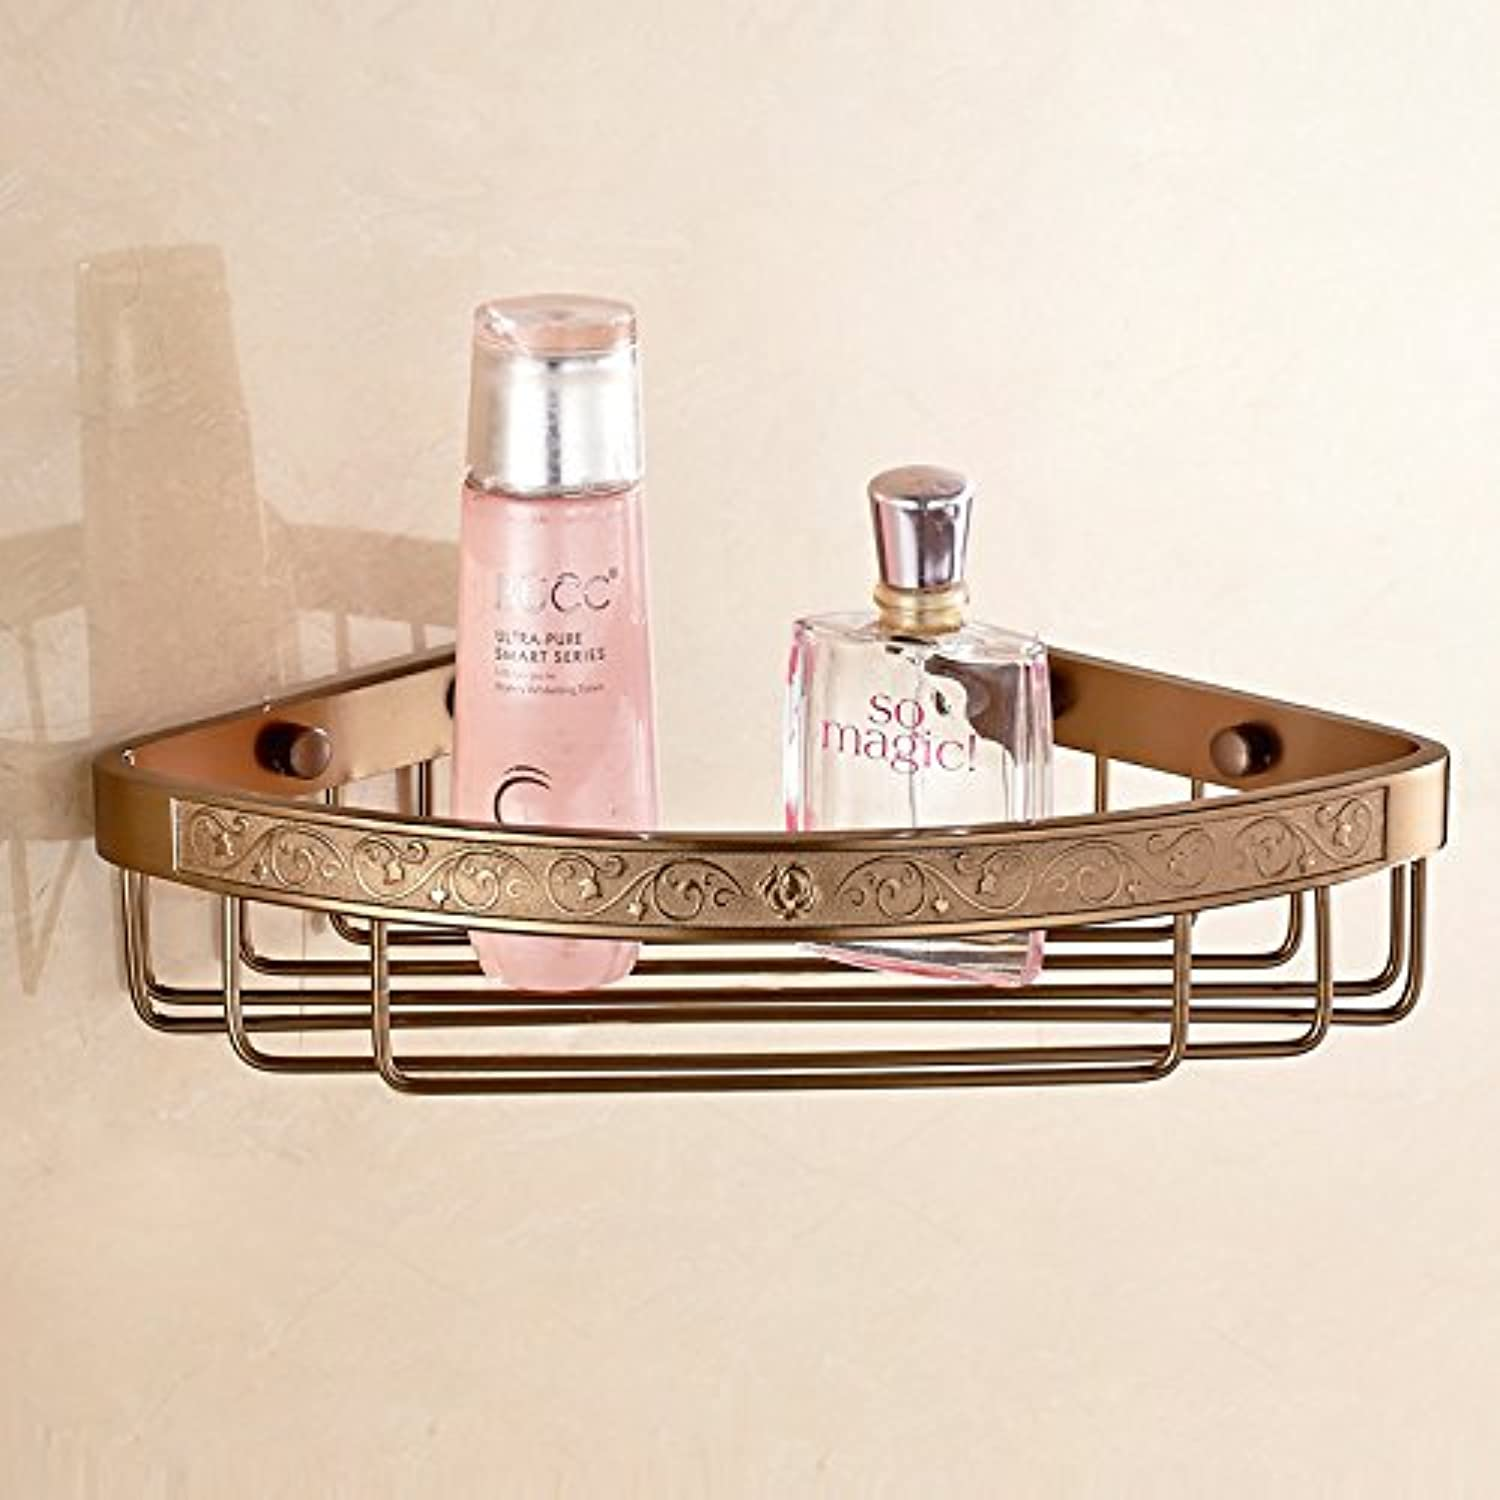 Bathroom Bathroom Shelf corner shelf Wall shelves space aluminium pendant carved antique